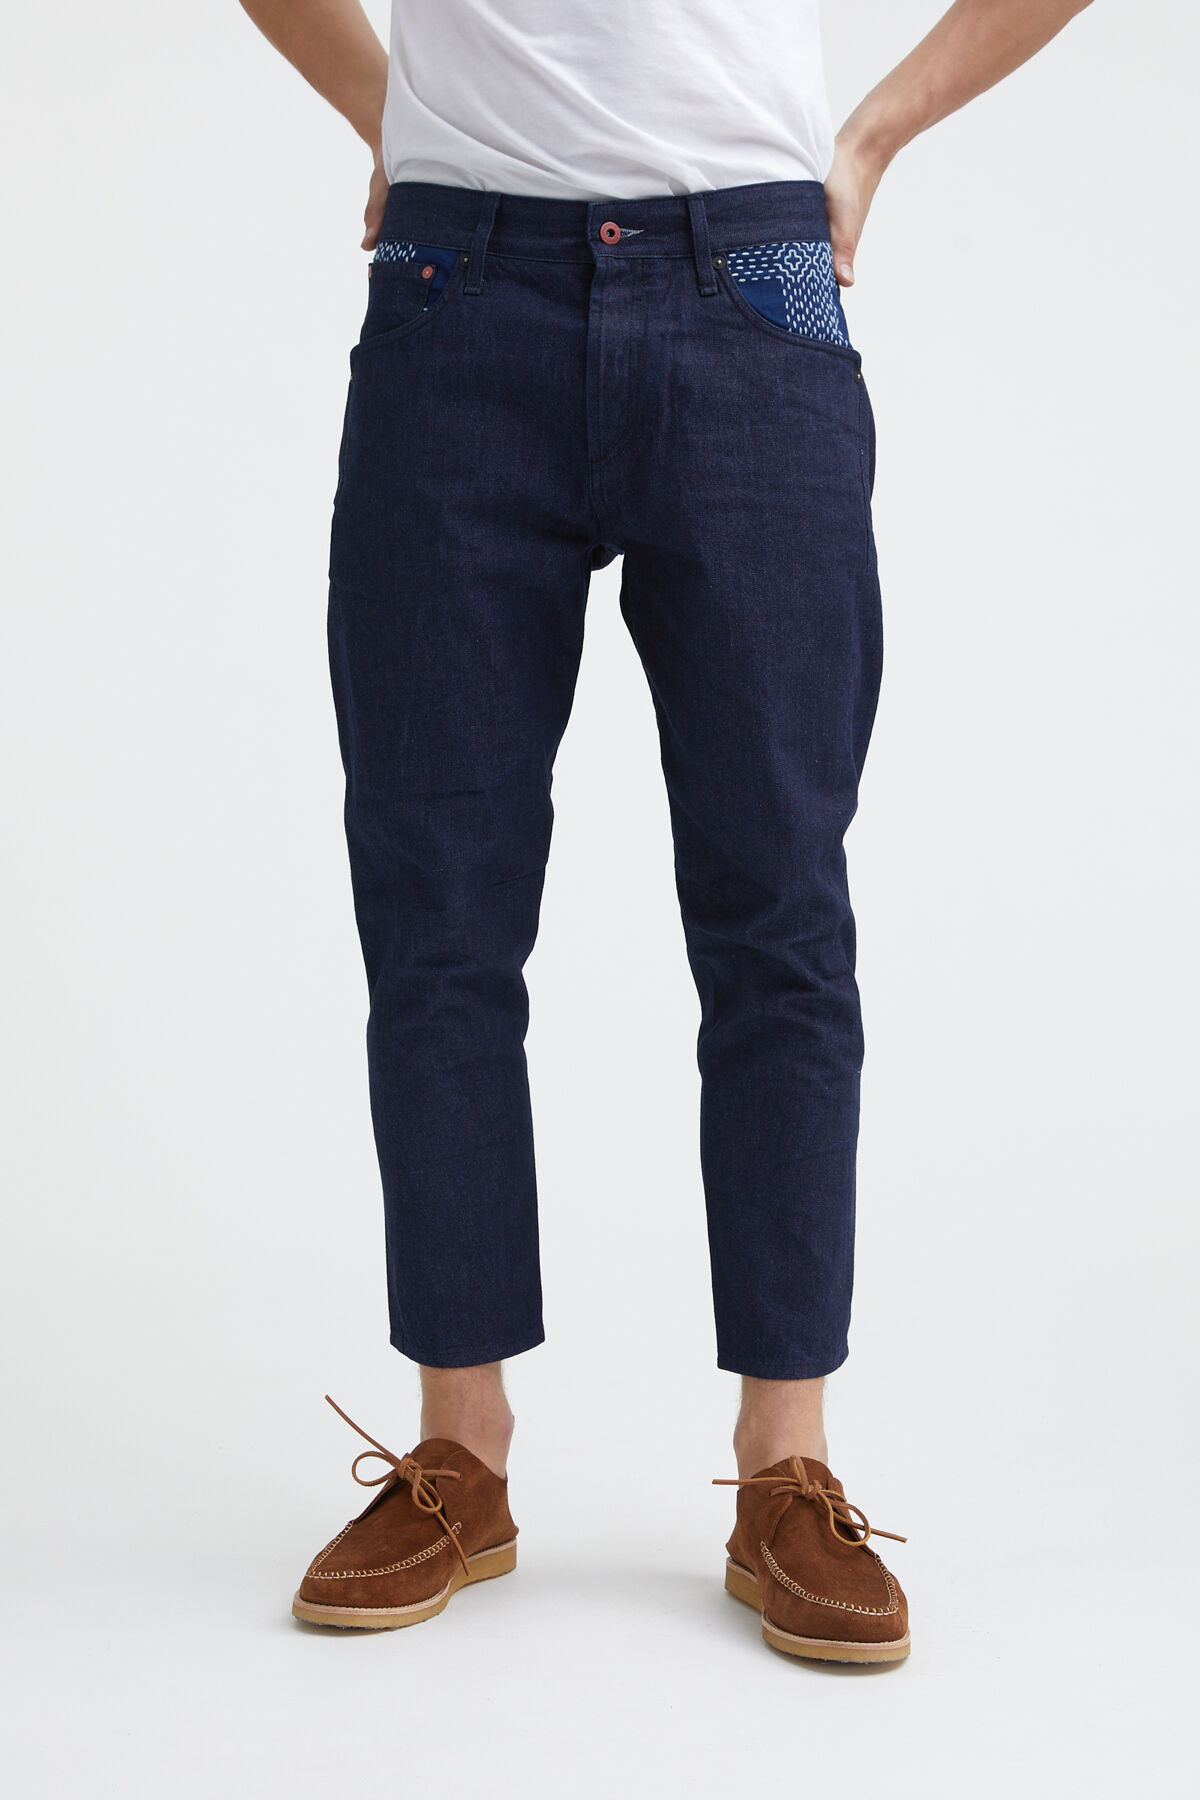 FUSION 1MIX Boro Recycled Denim - Cropped, Tapered fit